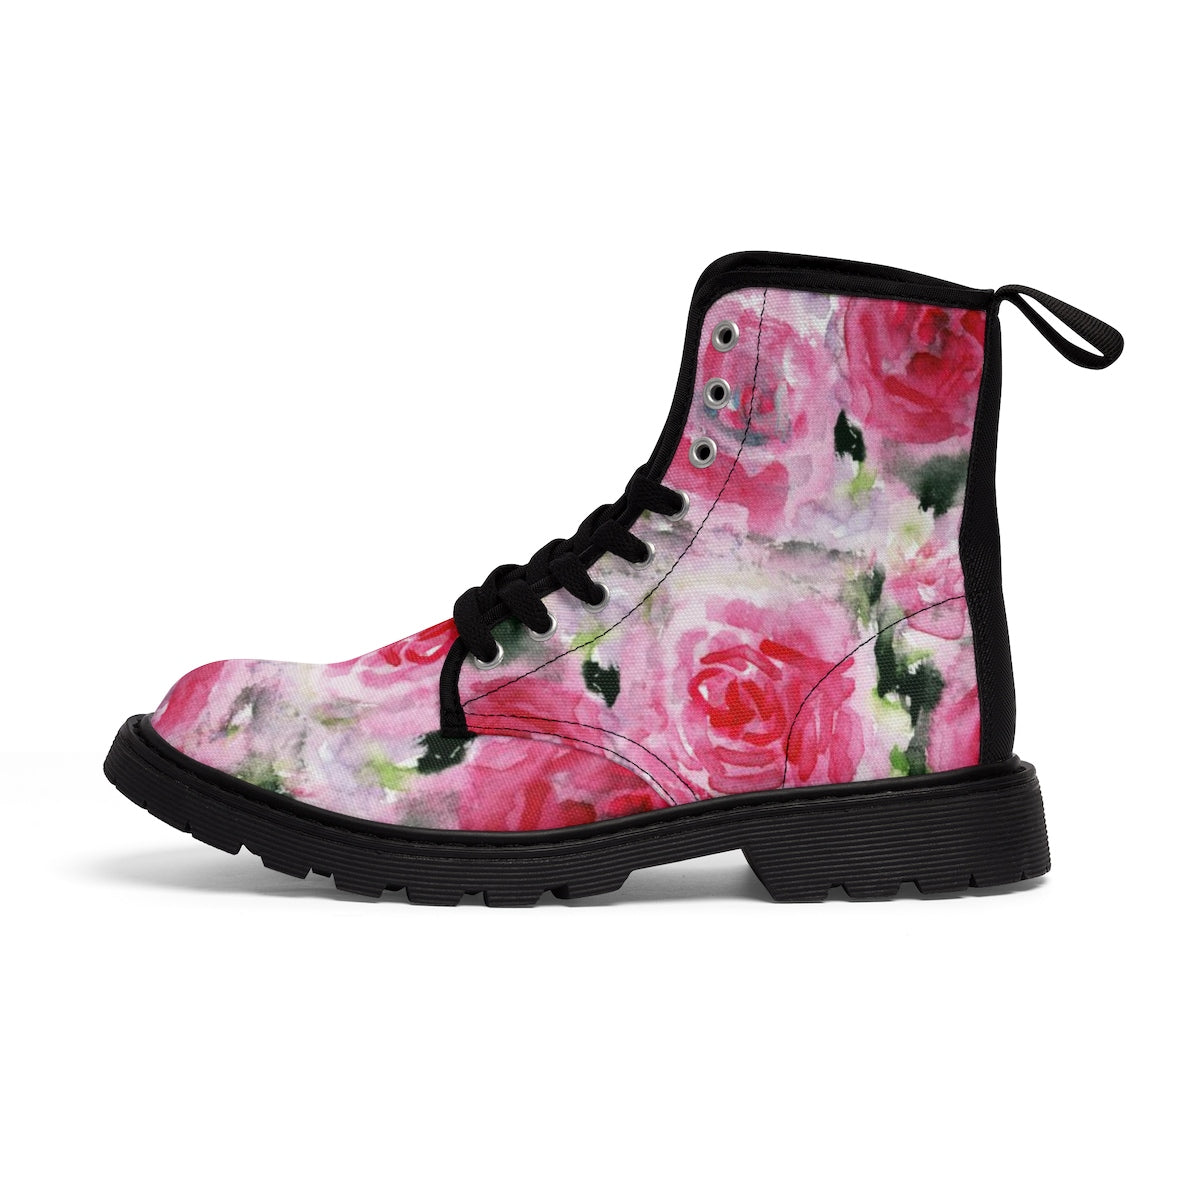 Pink Rose Floral Print Designer Women's Winter Lace-up Toe Cap Boots Shoes (US 6.5-11)-Women's Boots-Black-US 9-Heidi Kimura Art LLC